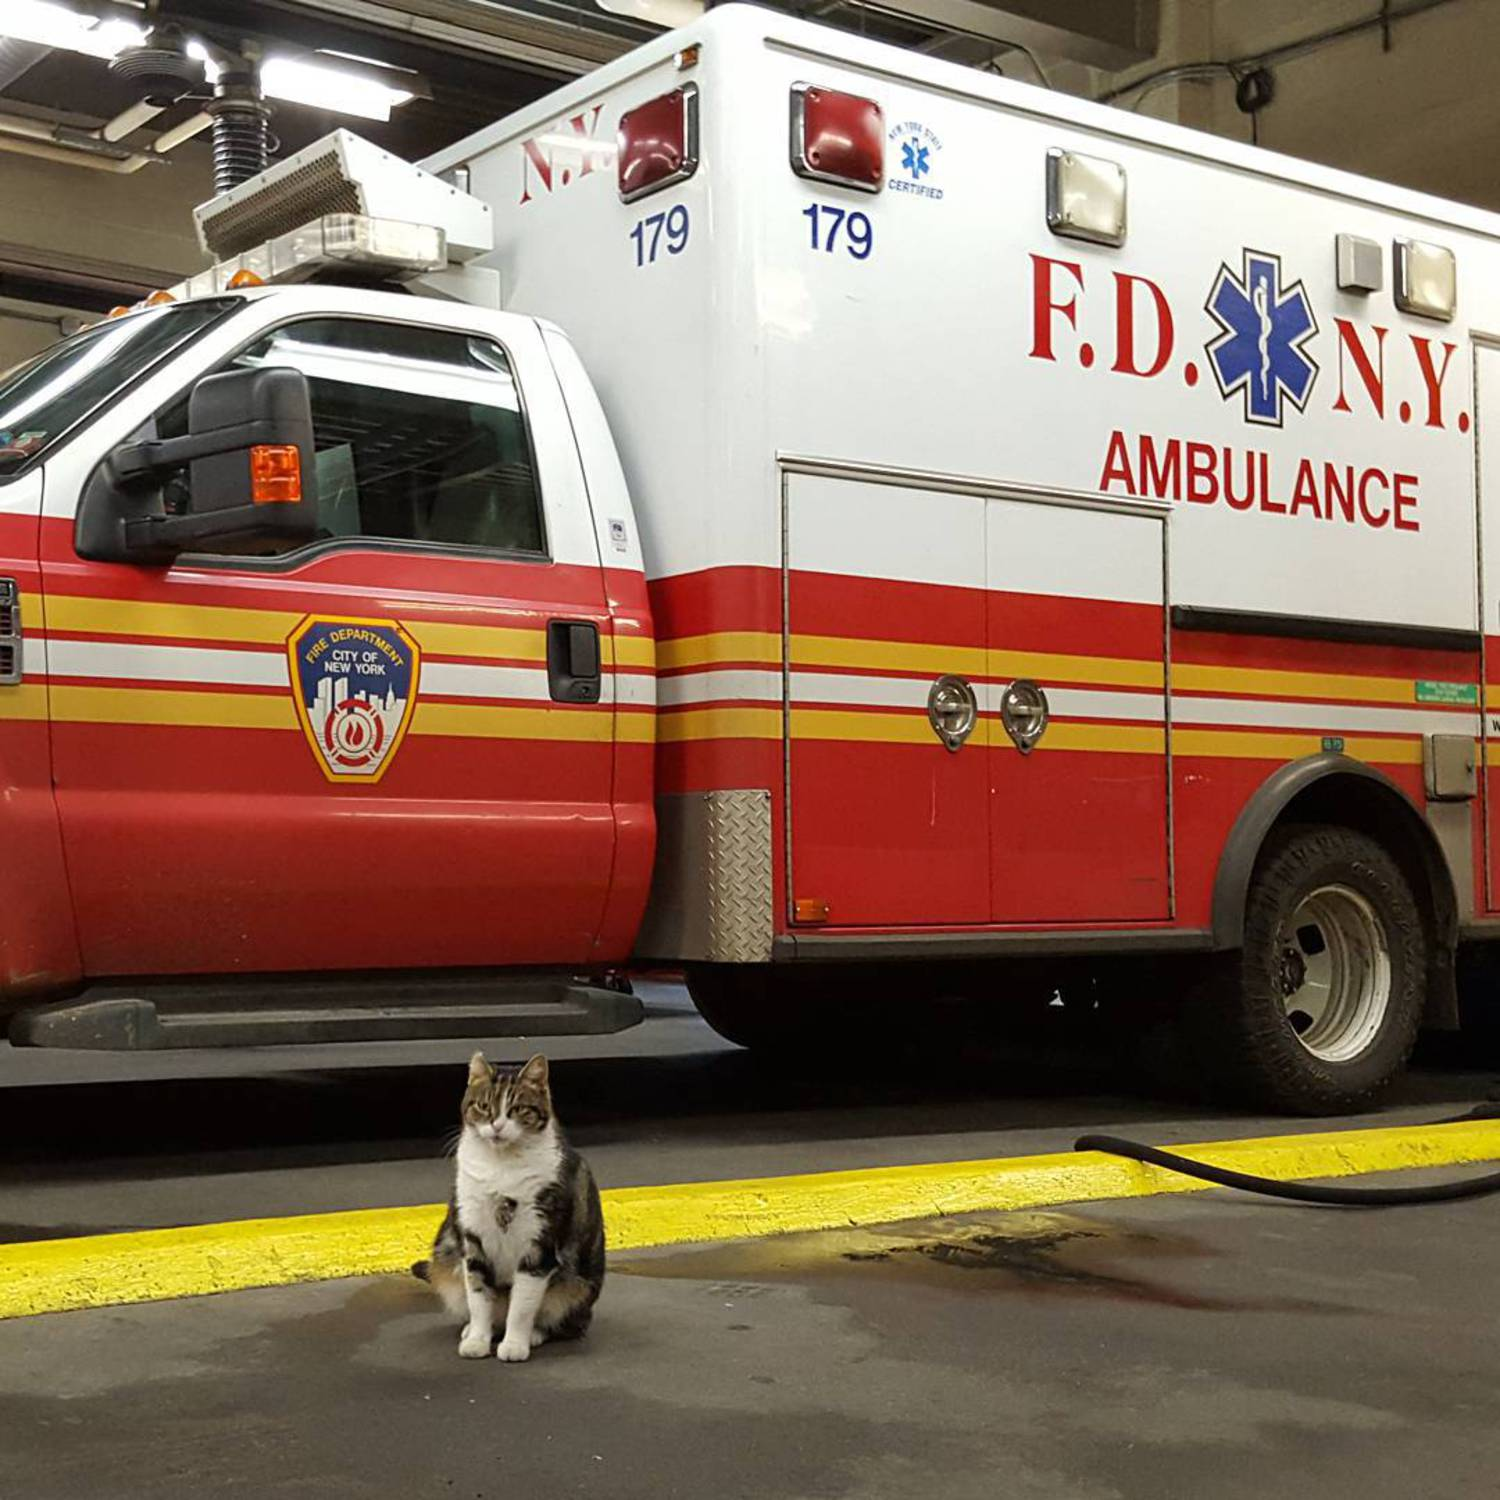 The key to hiding those extra holiday pounds is to stand next to things that are much bigger than you are. #howiworkout #notthativegottenbigger #wellmaybeihave #justalittle #whensdinnerbtw  #blameitontheholidays #advicefromthecat #nostress #imacat #littlecat #kitty #bigvehicles #ambulance #fdnyems #fdny #stationcat #firecat #workingcats #catsofnyc #brooklyncats #bedstuy #meow #tabby #tabbiesofinstagram #catsofinstagram